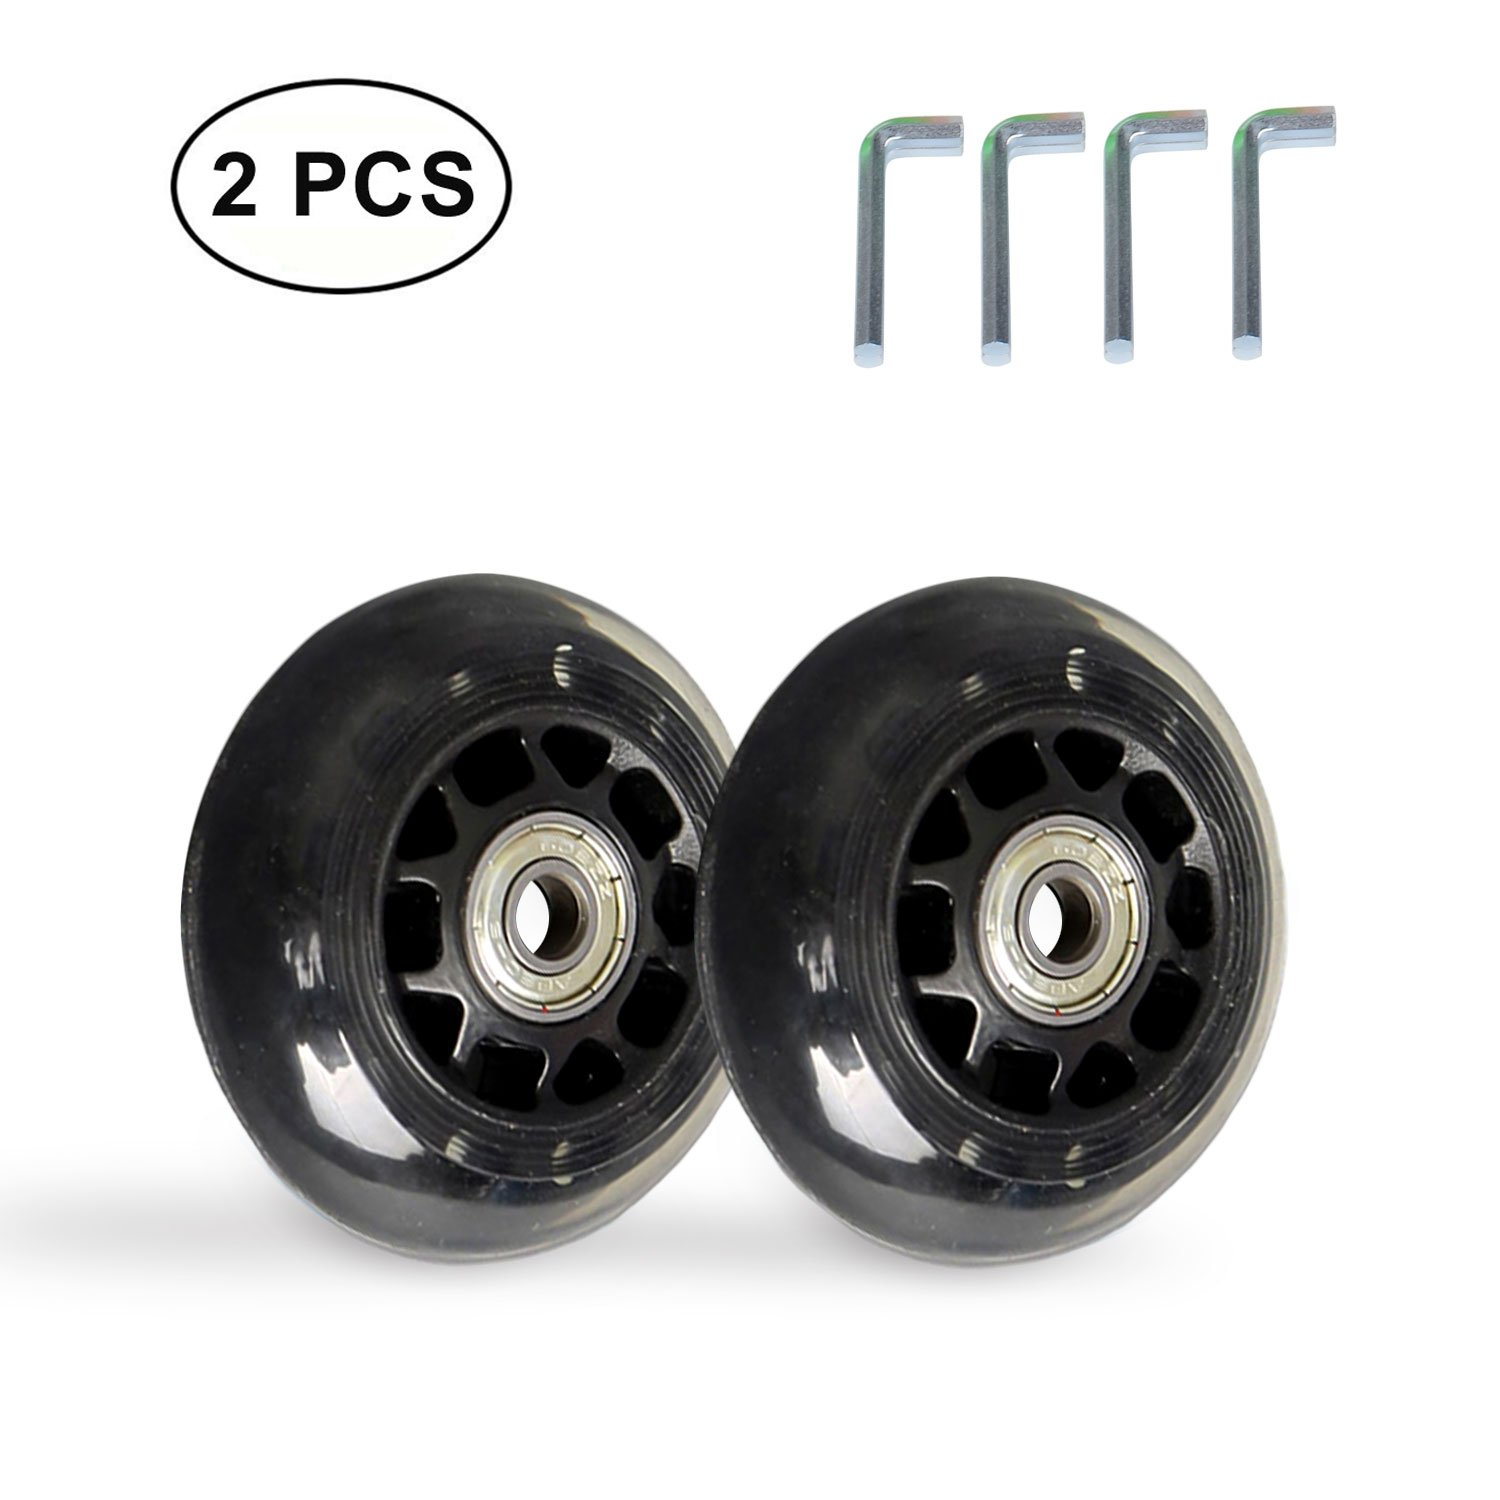 B.LeekS RollerbladeSkate Wheel Replacements, Kick Scooter Replacement Wheels with Bearings, One Set of (2) Wheels, Multiple Sizes & Colors with LED Illuminating Lights (Black, 80mm)